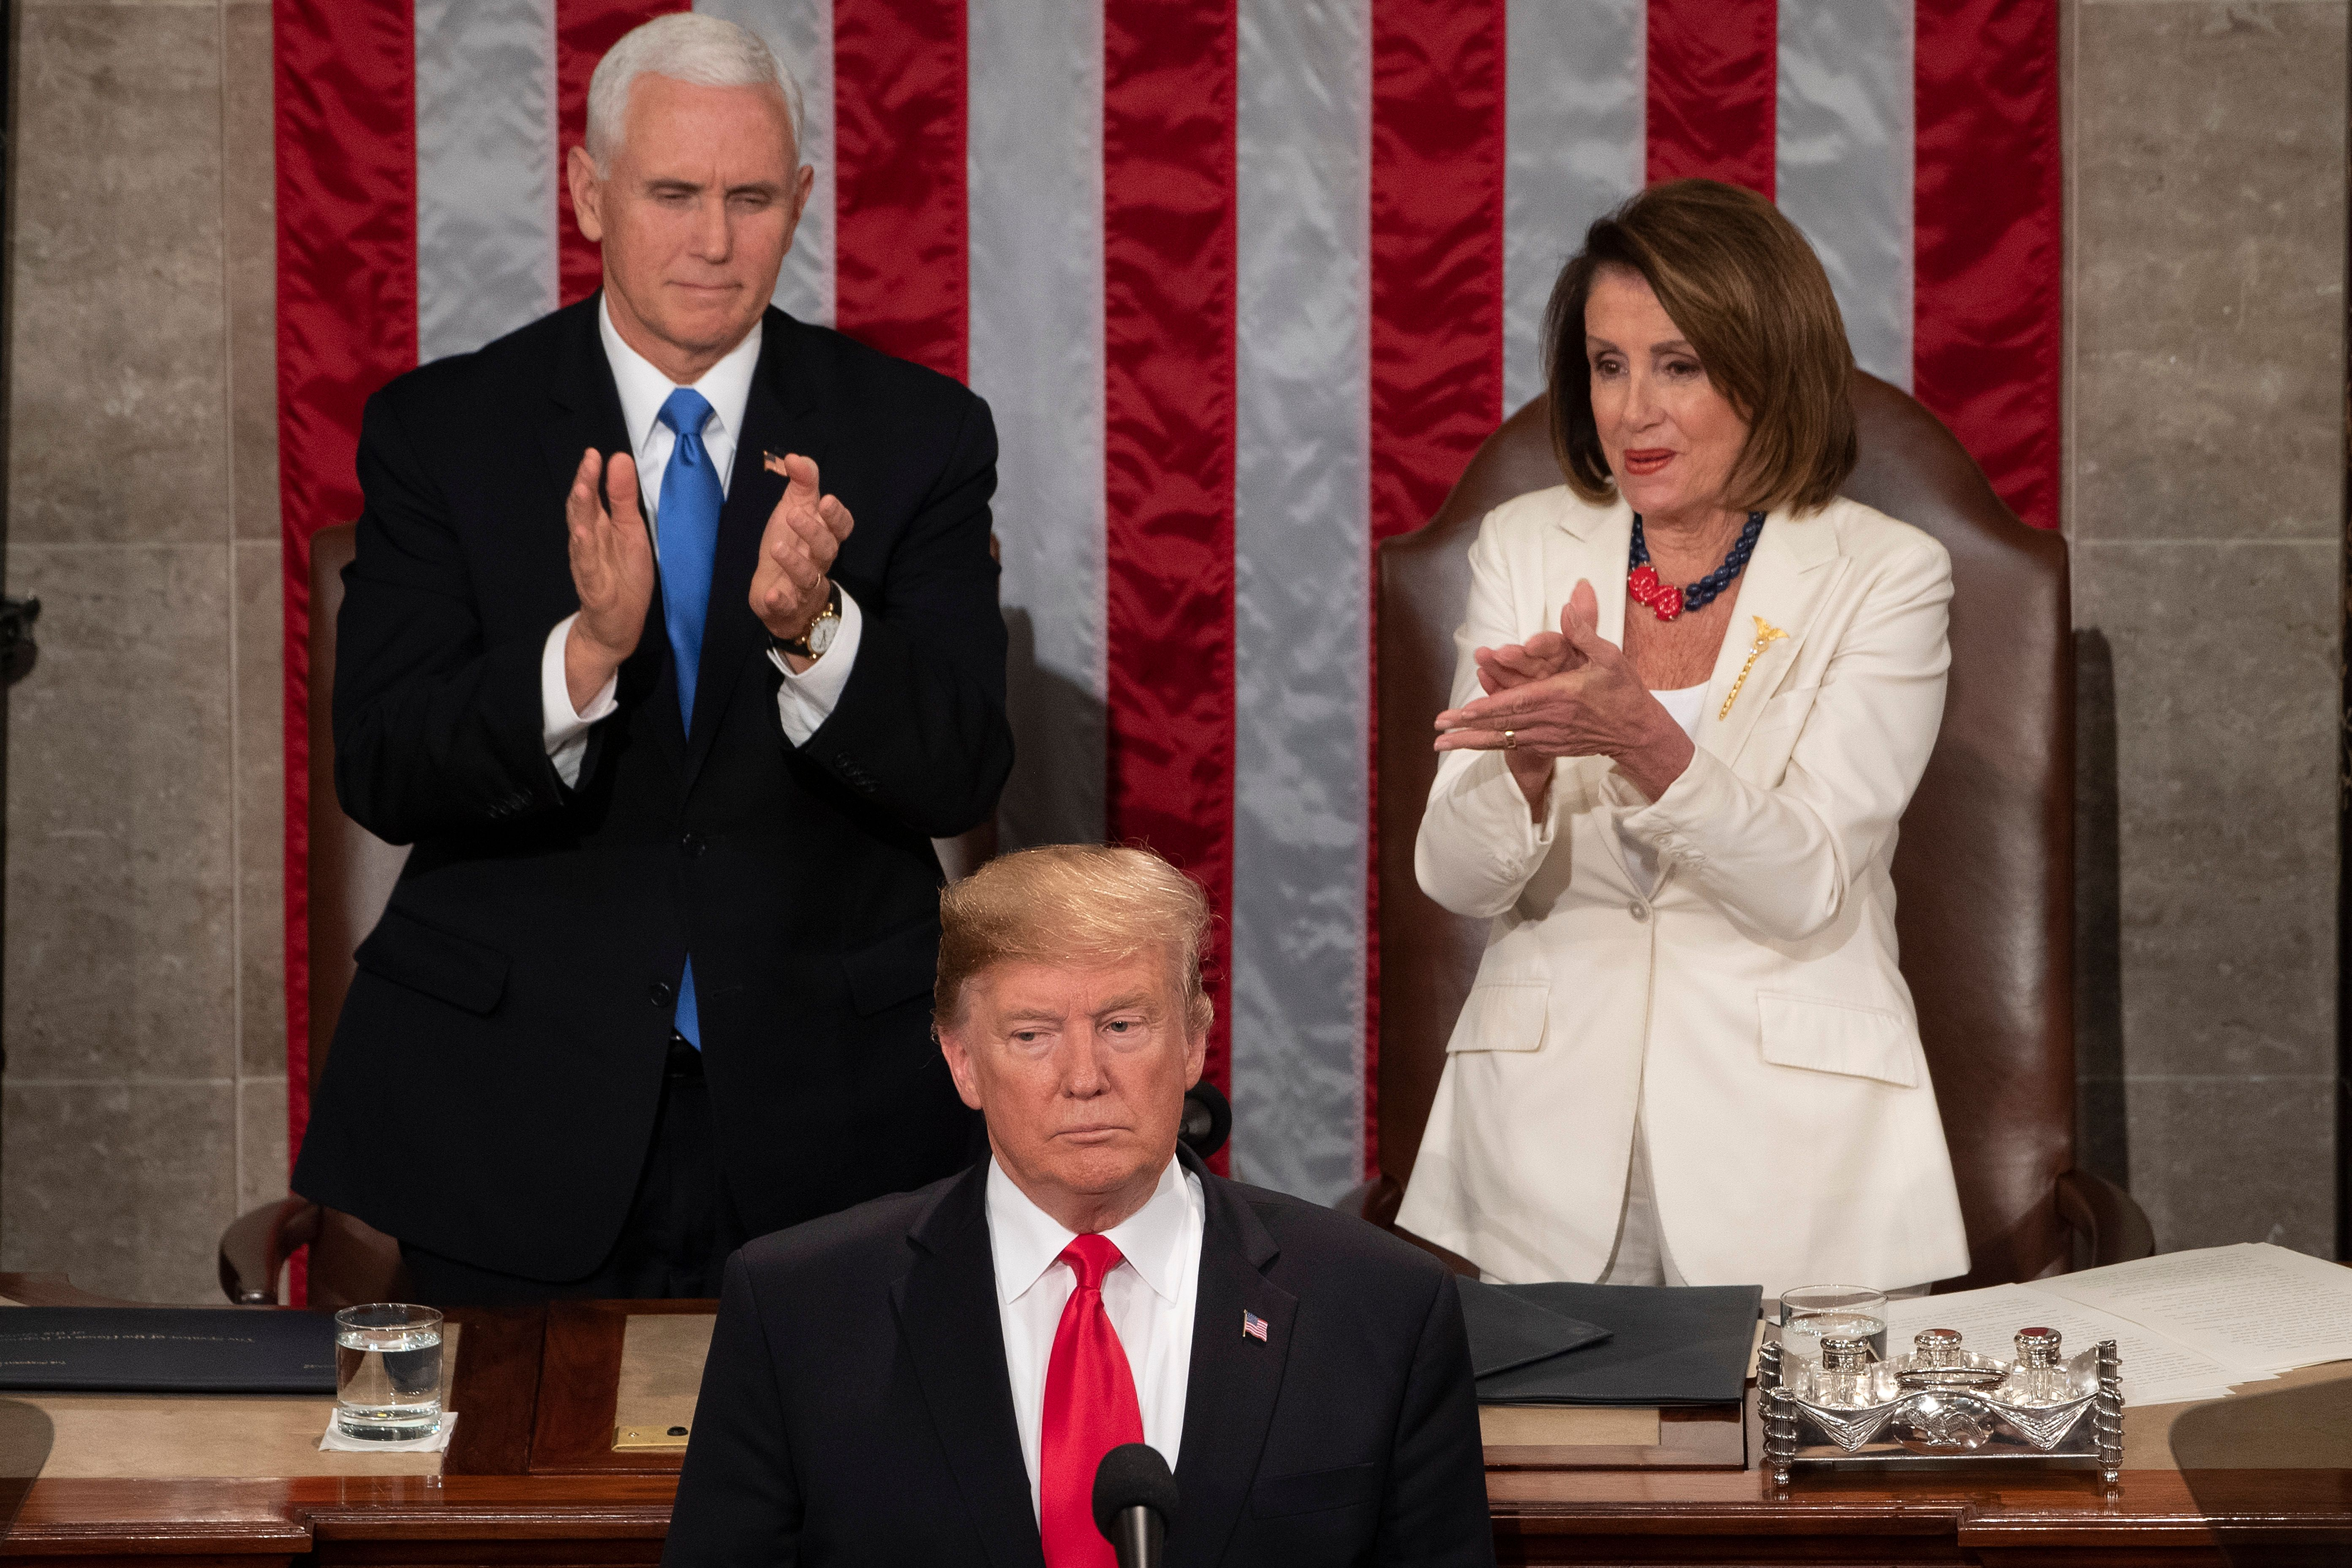 US President Donald Trump delivers the State of the Union address at the US Capitol in Washington, DC, on February 5, 2019. (JIM WATSON/AFP via Getty Images)